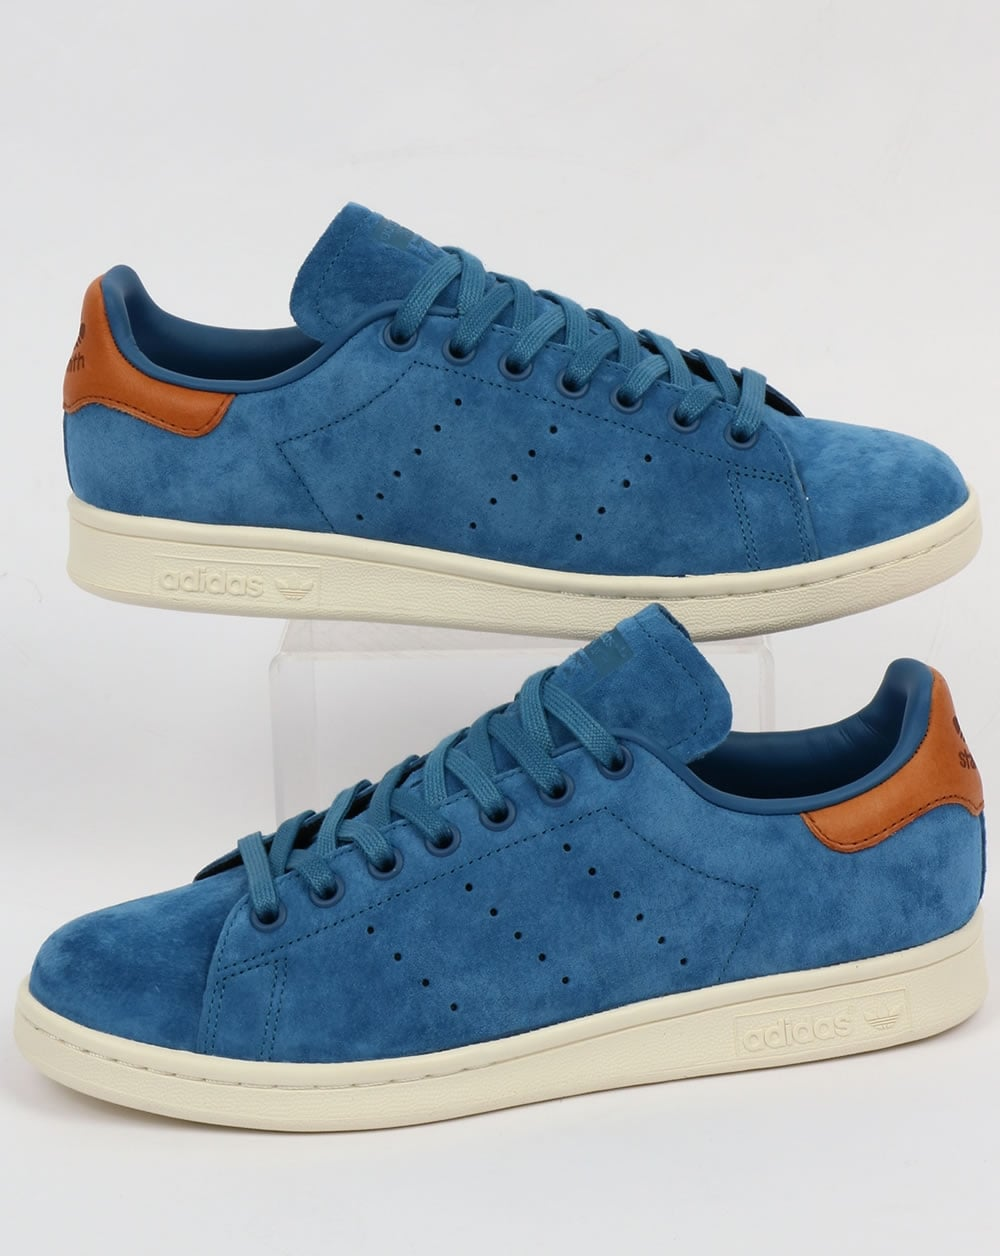 5e6d483e1b47 adidas Trainers Adidas Originals Stan Smith Trainers Core Blue